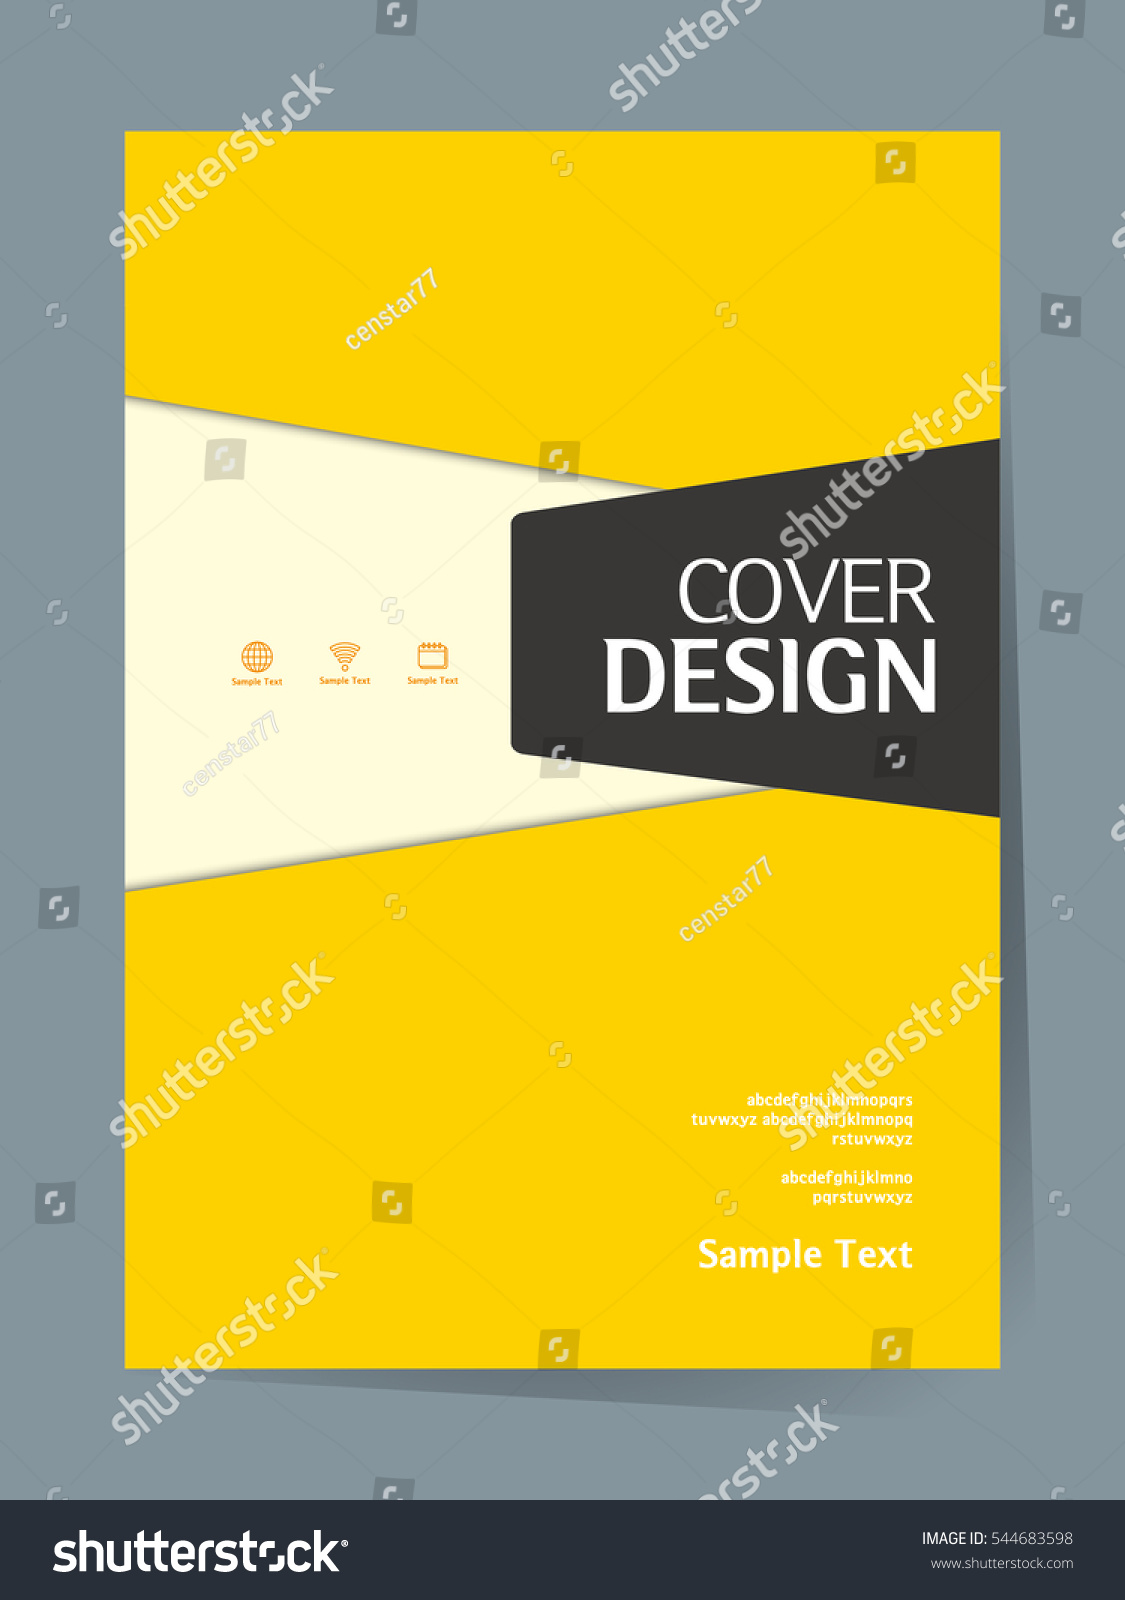 Poetry Book Cover Vector : Book cover design vector template a 스톡 벡터